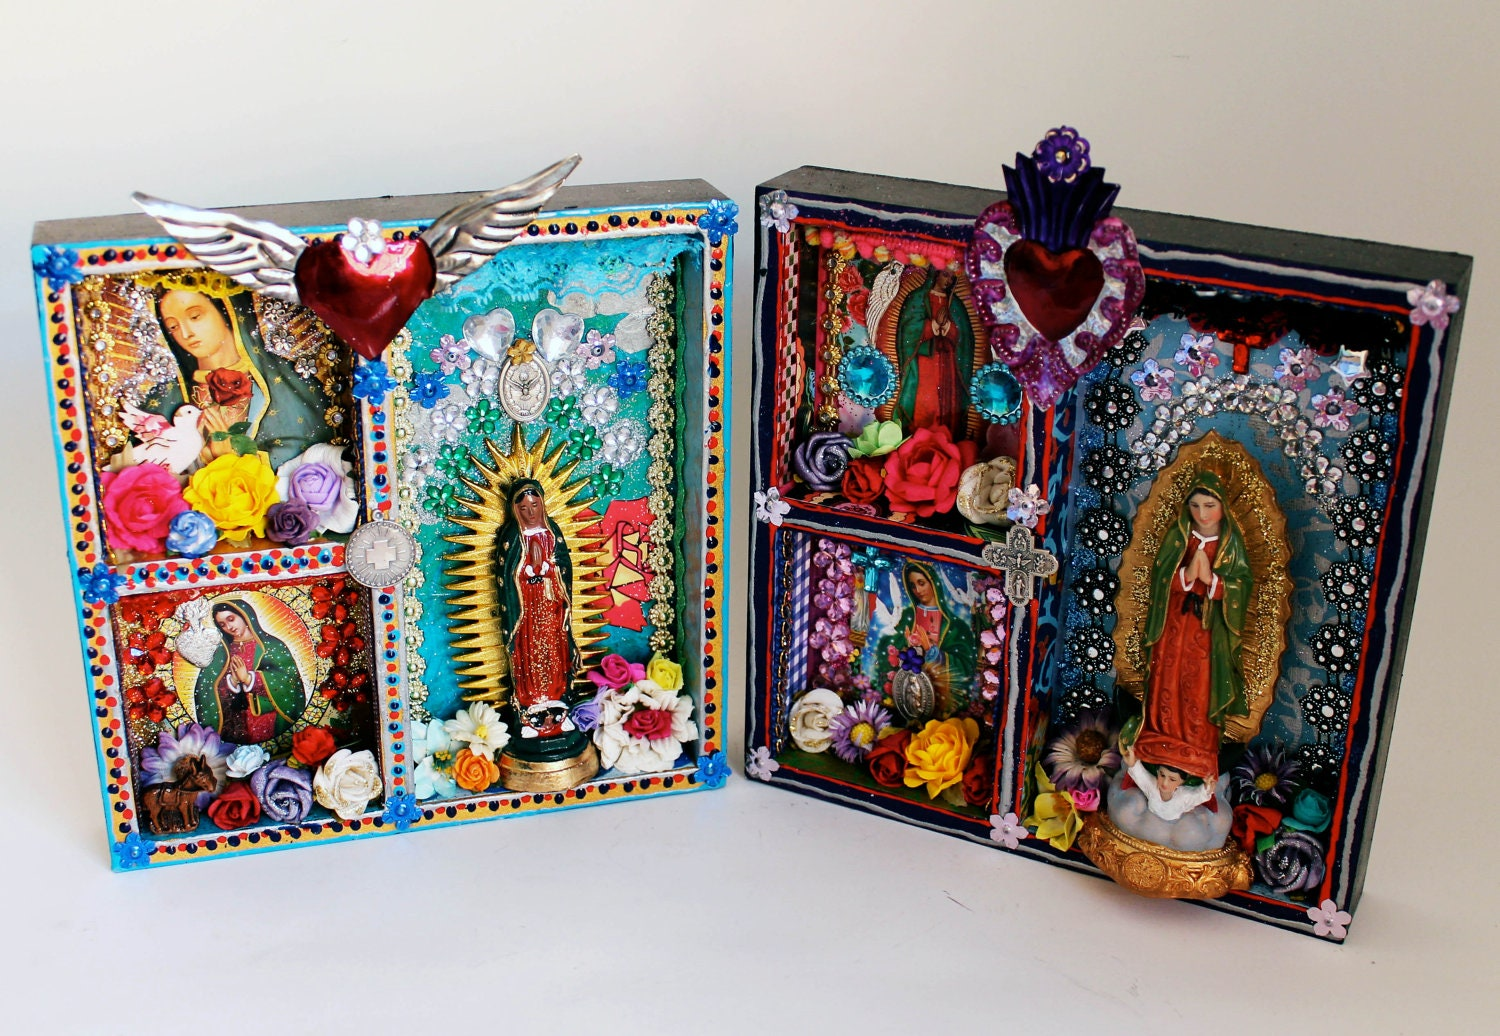 Our lady of guadalupe shadow box shrine the virgin mary for Our lady of guadalupe arts and crafts